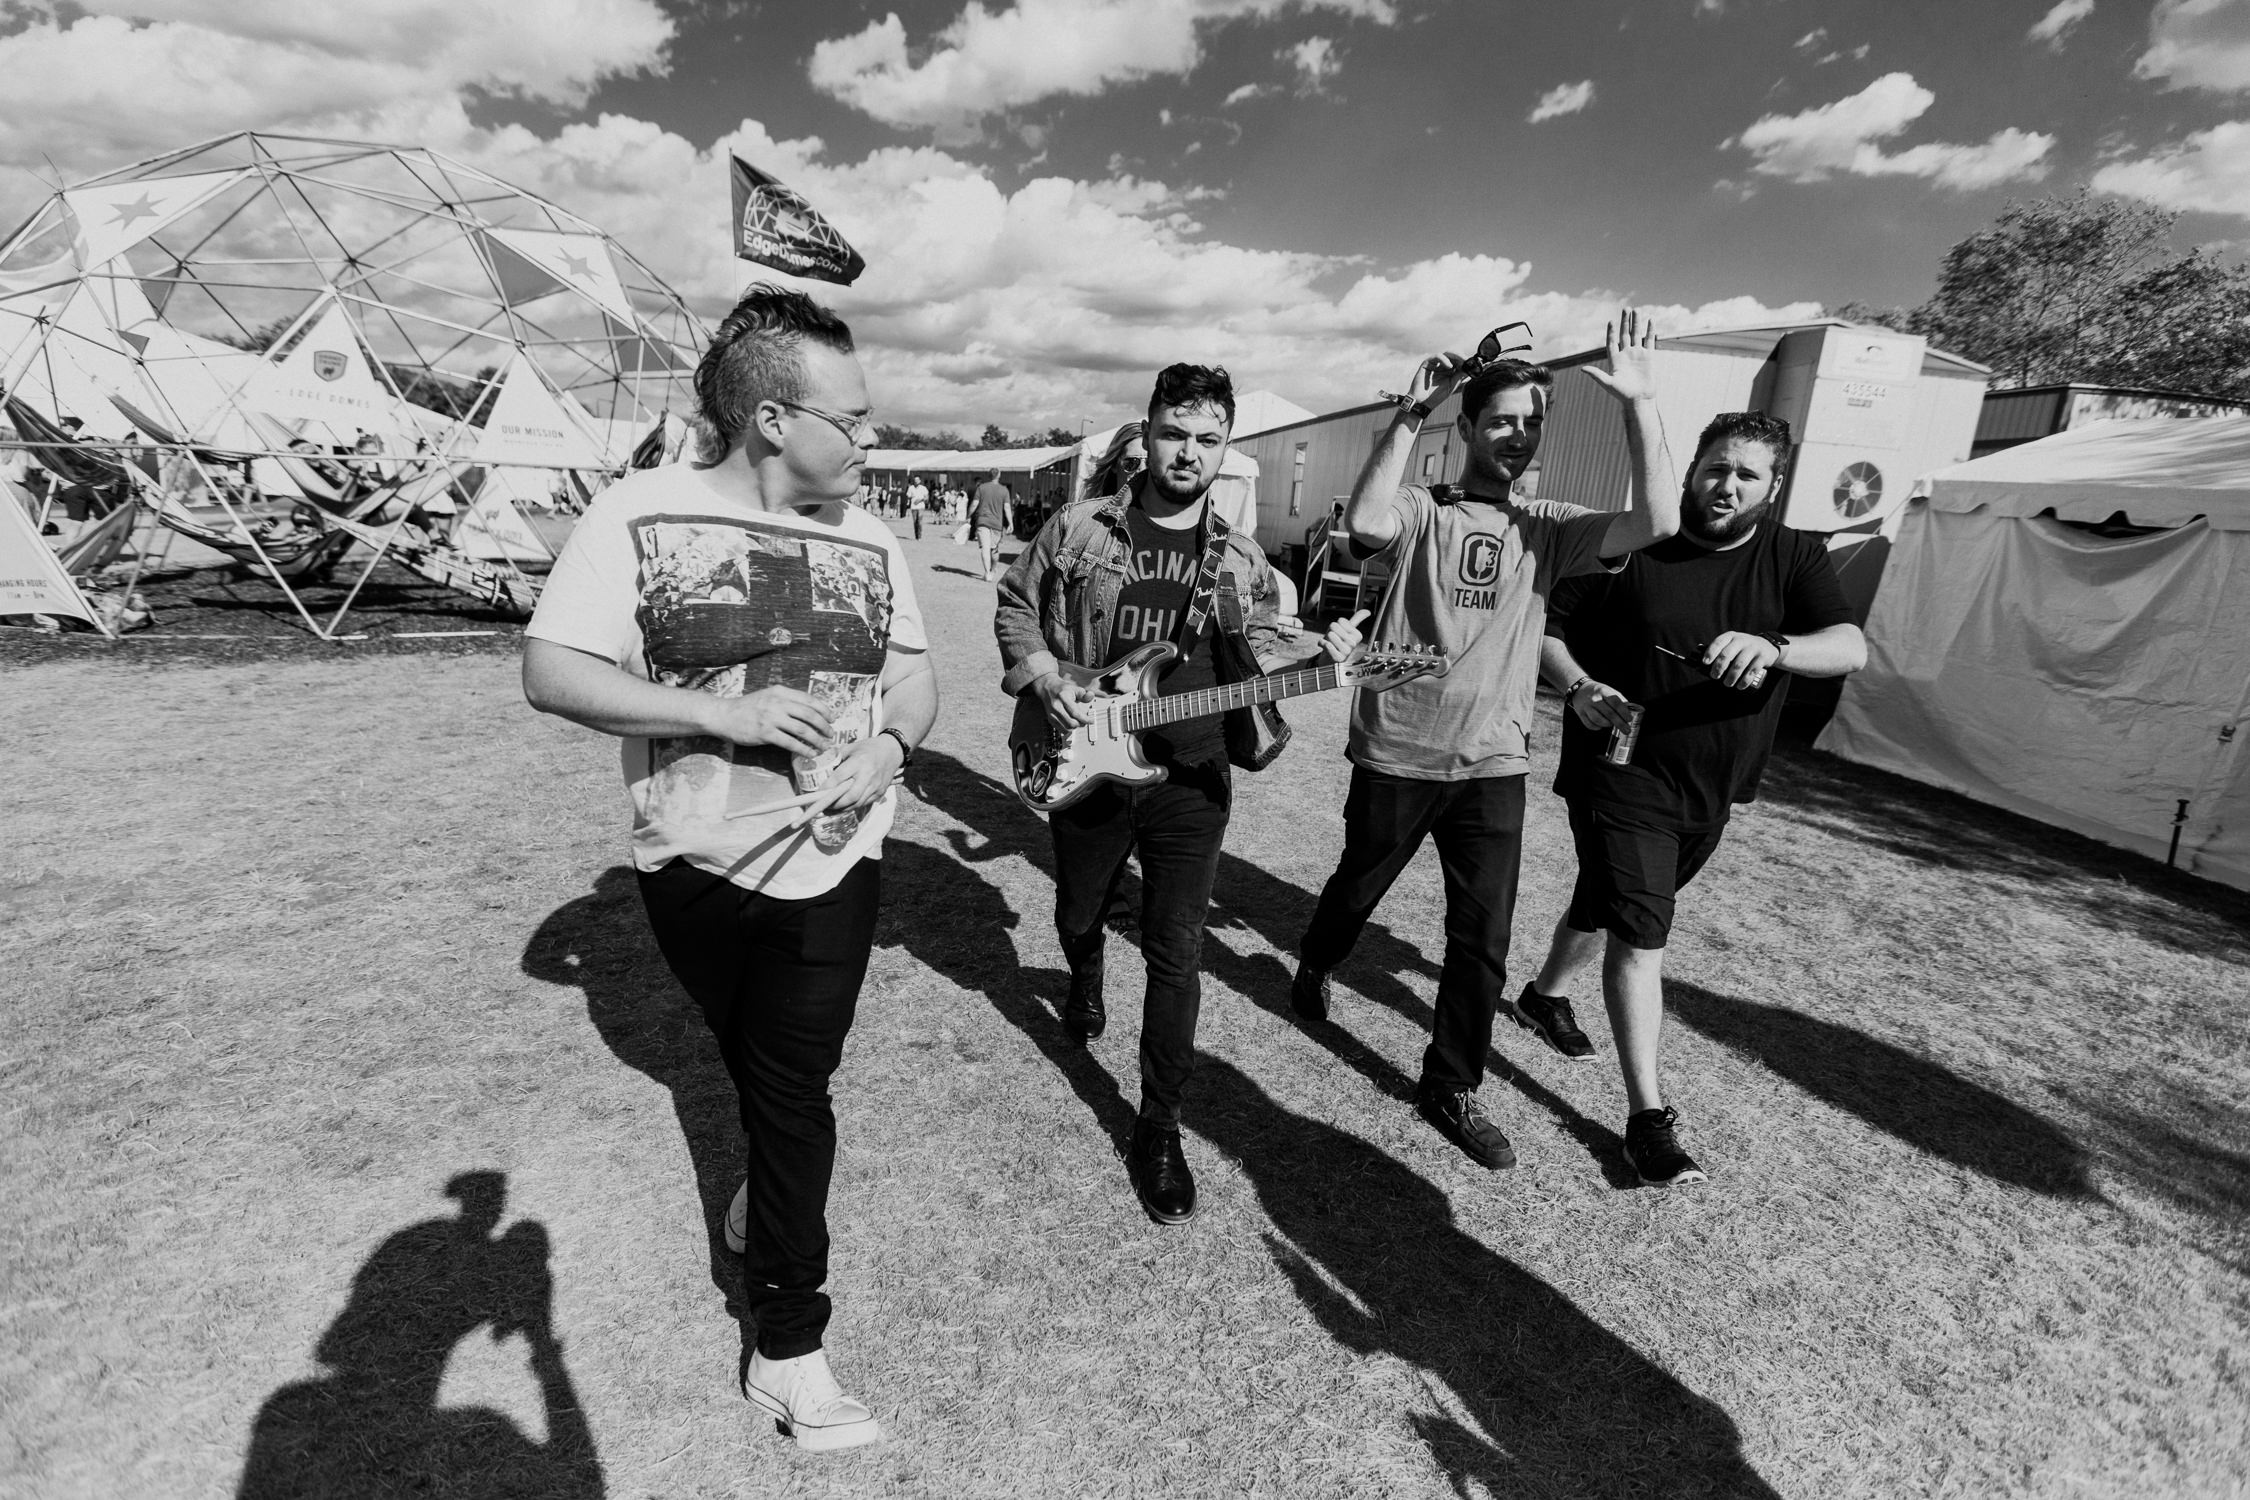 walk-the-moon-backstage-festival-walk-the-moon-AnnaLeeMedia